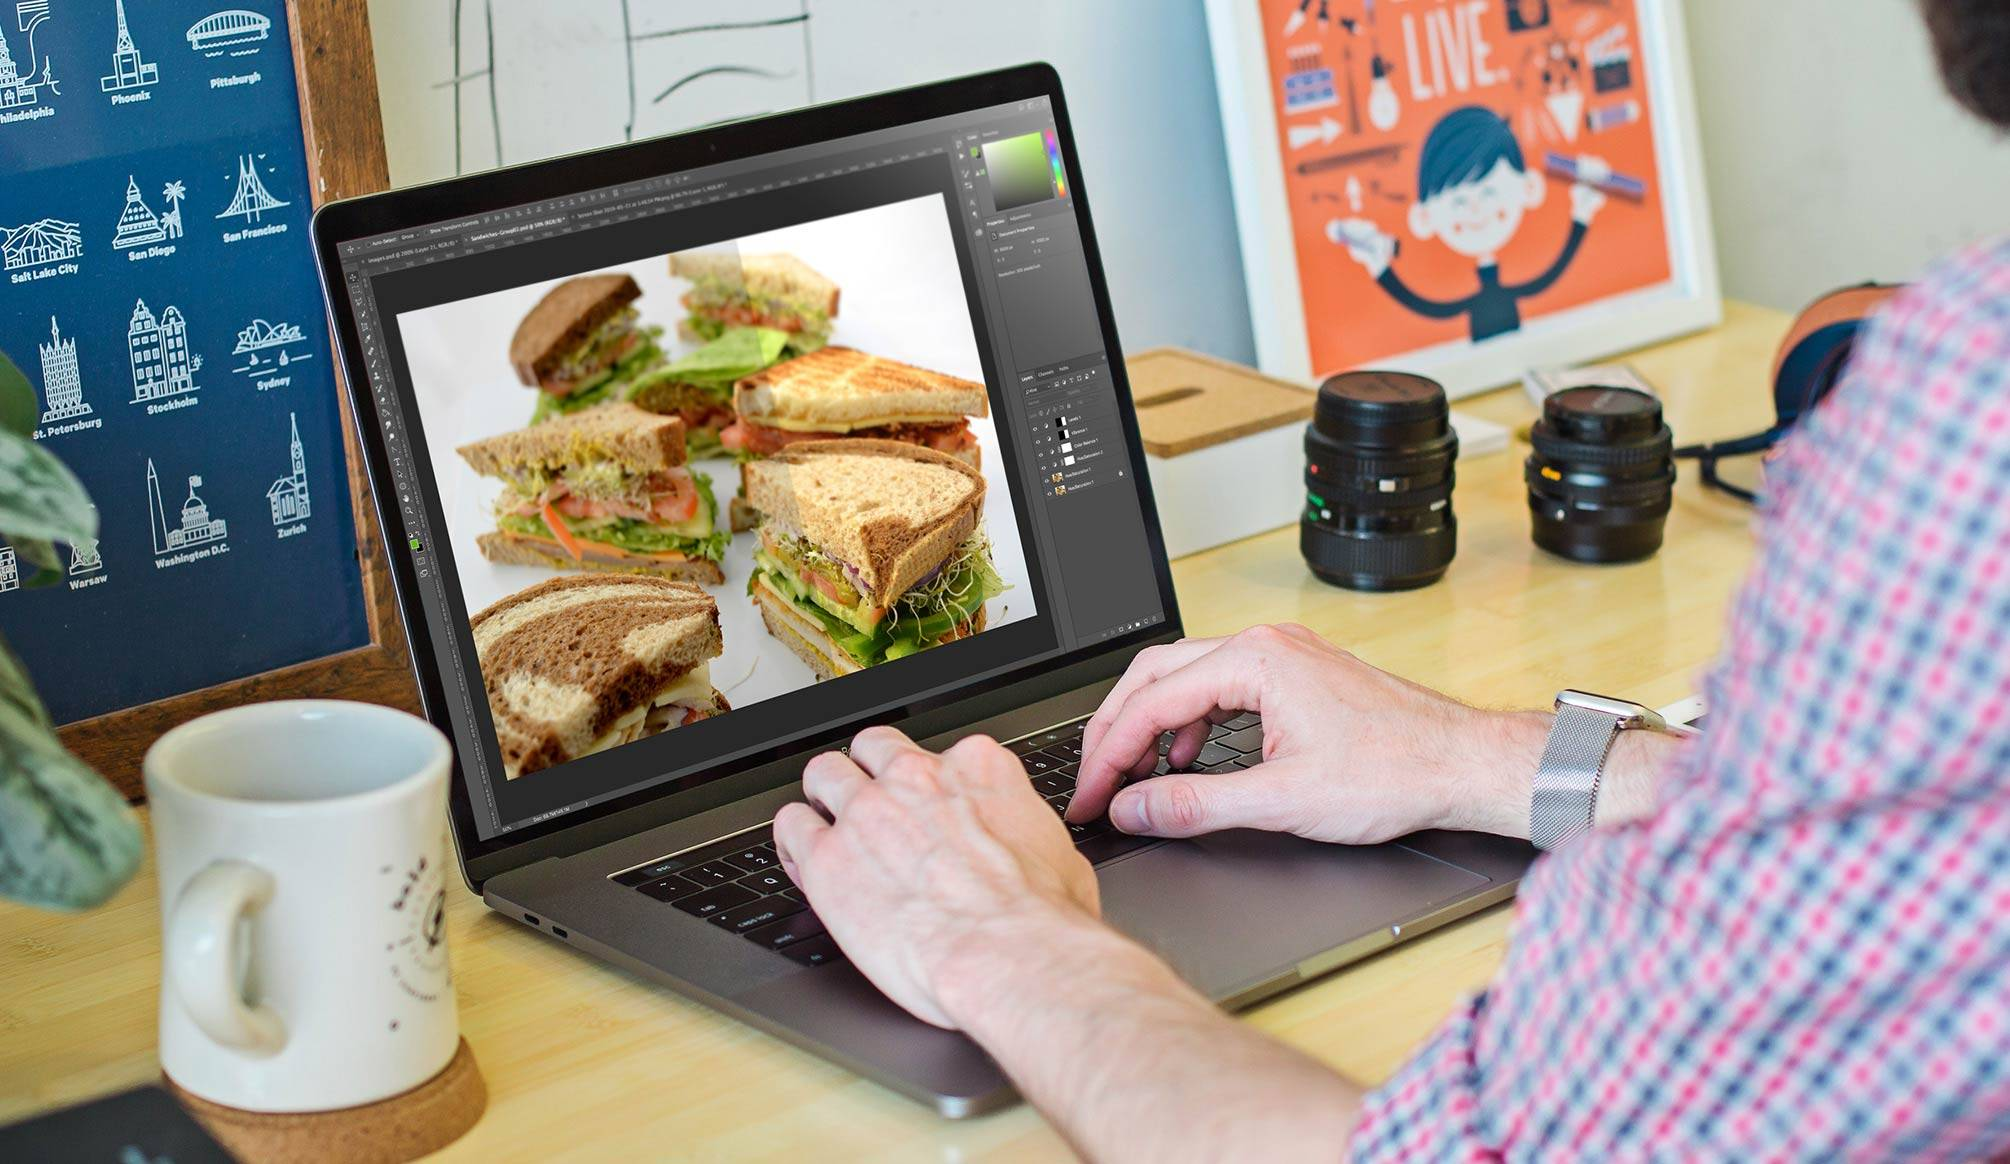 Graphic Design Services - NexSigns for the delly digital menu boards - production